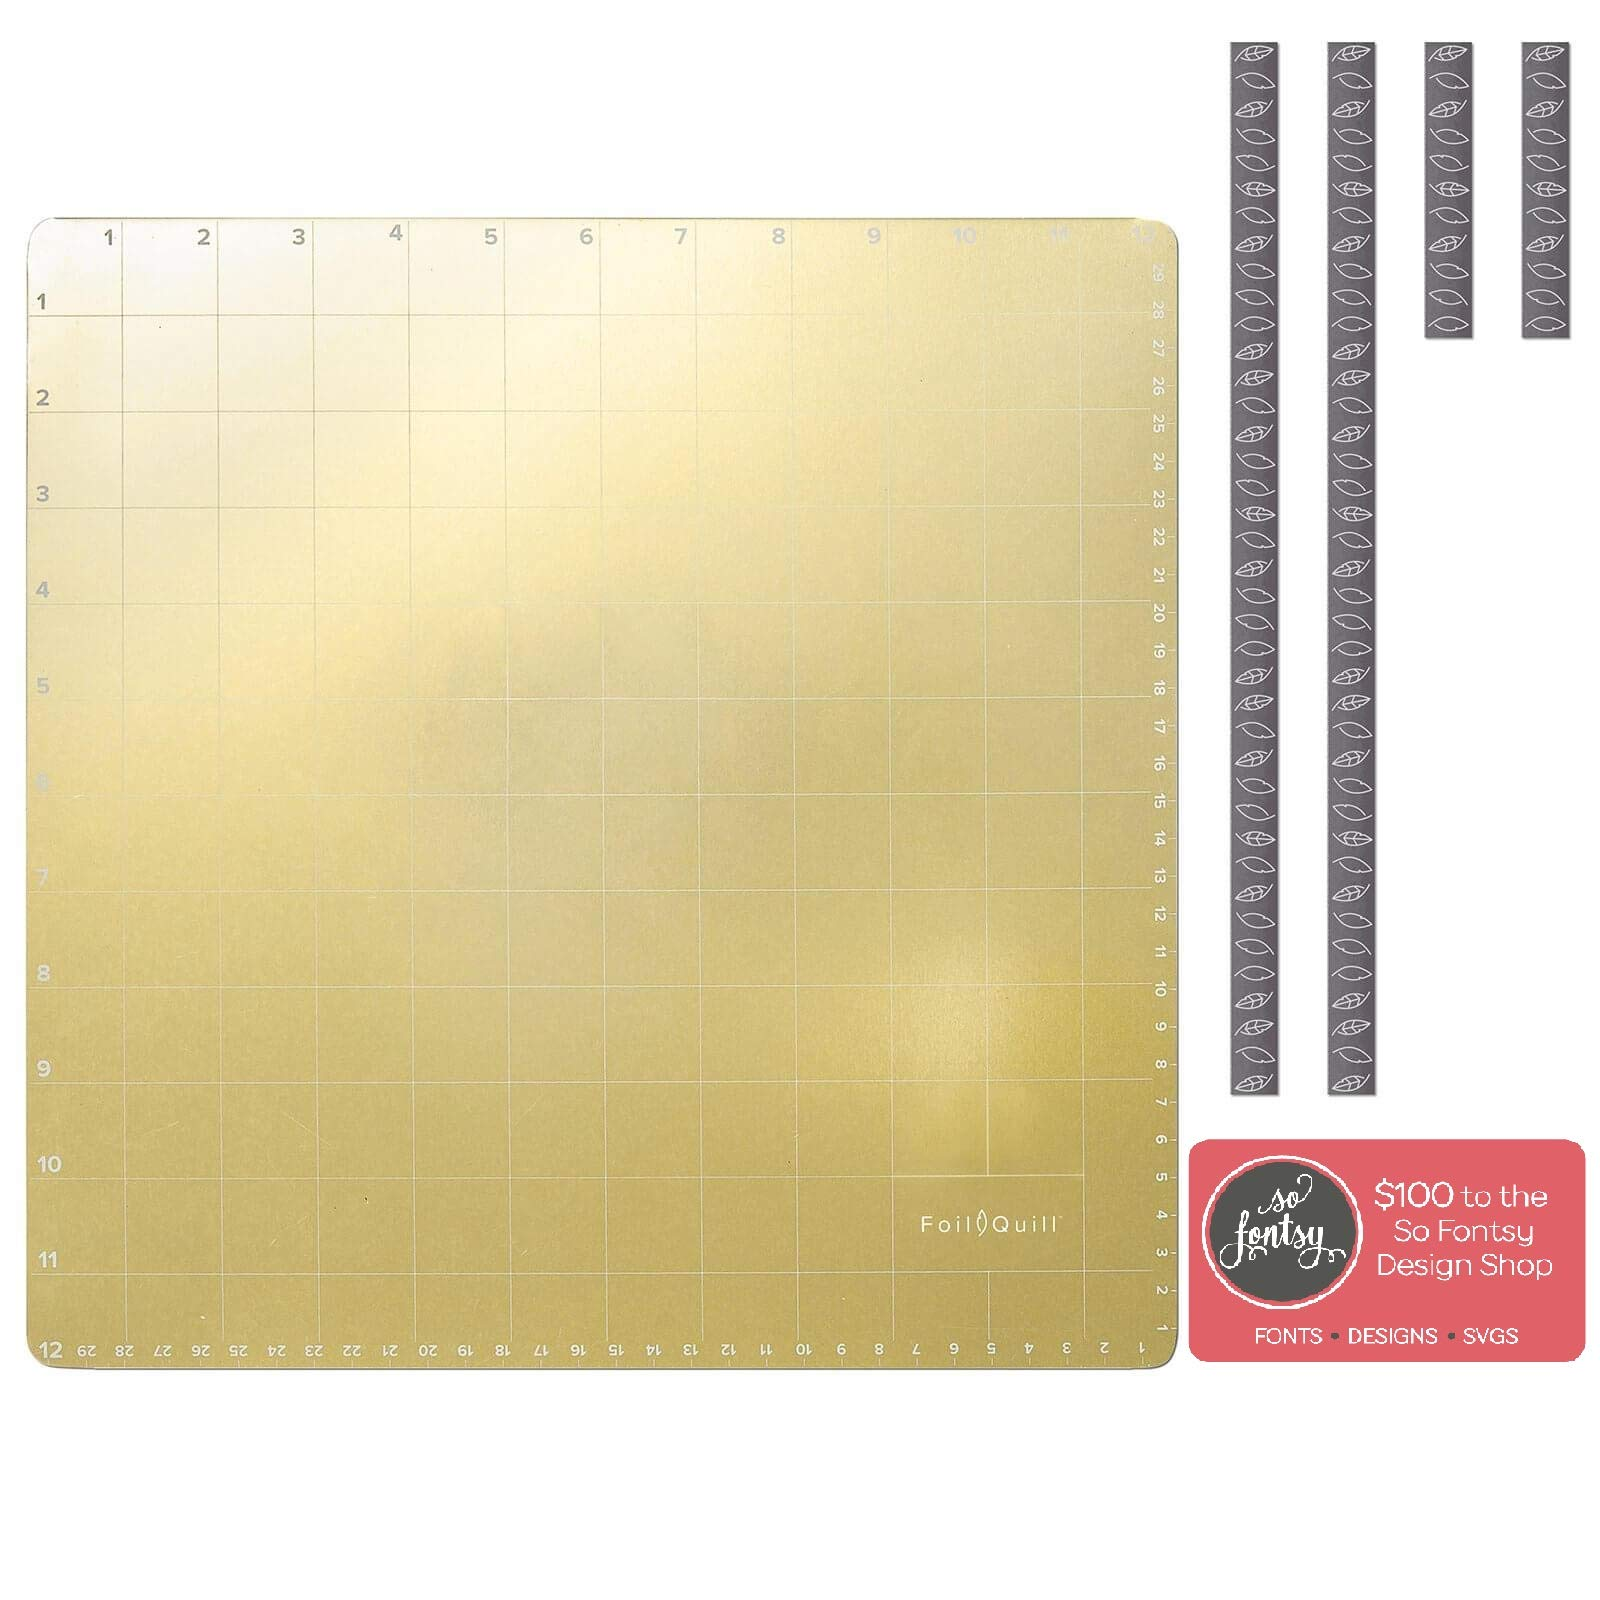 Foil Quill Magnetic Mat 12'' x 12'' for Silhouette Cameo, Cricut & Brother, Magnets, So Fontsy Design Card